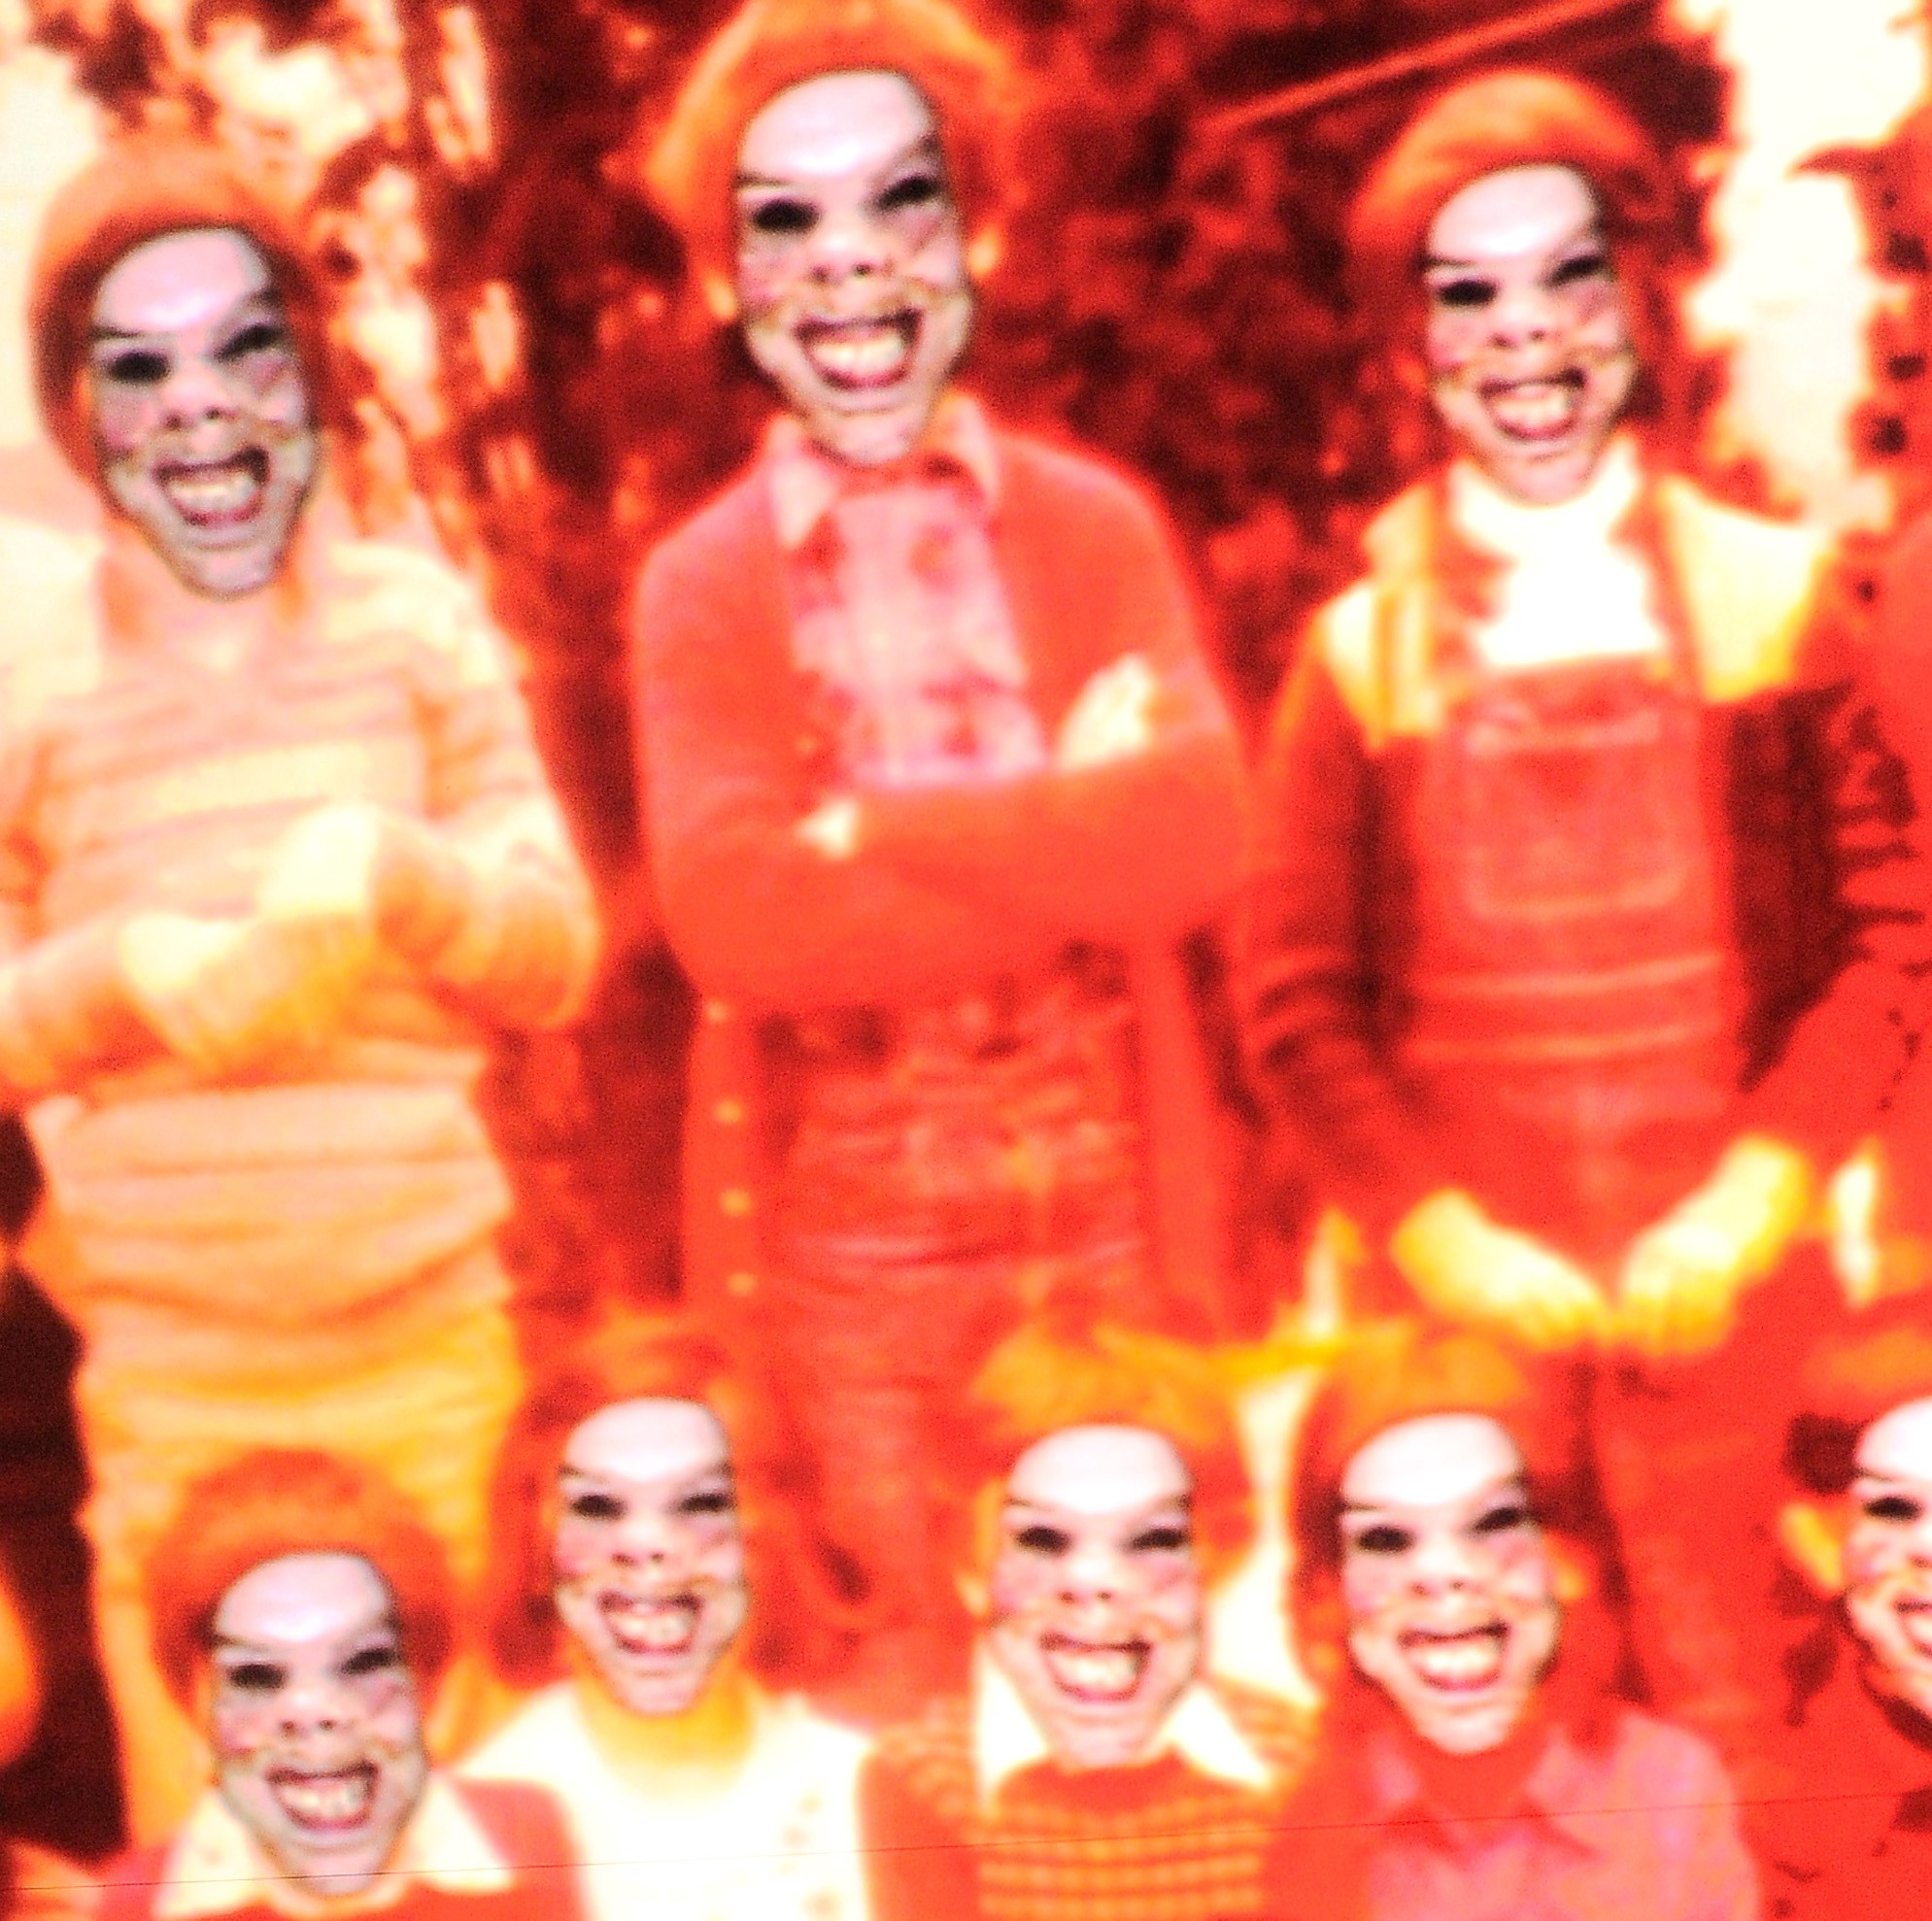 Decrypting The Aphex Twin Soundcloud - Cuepoint - Medium